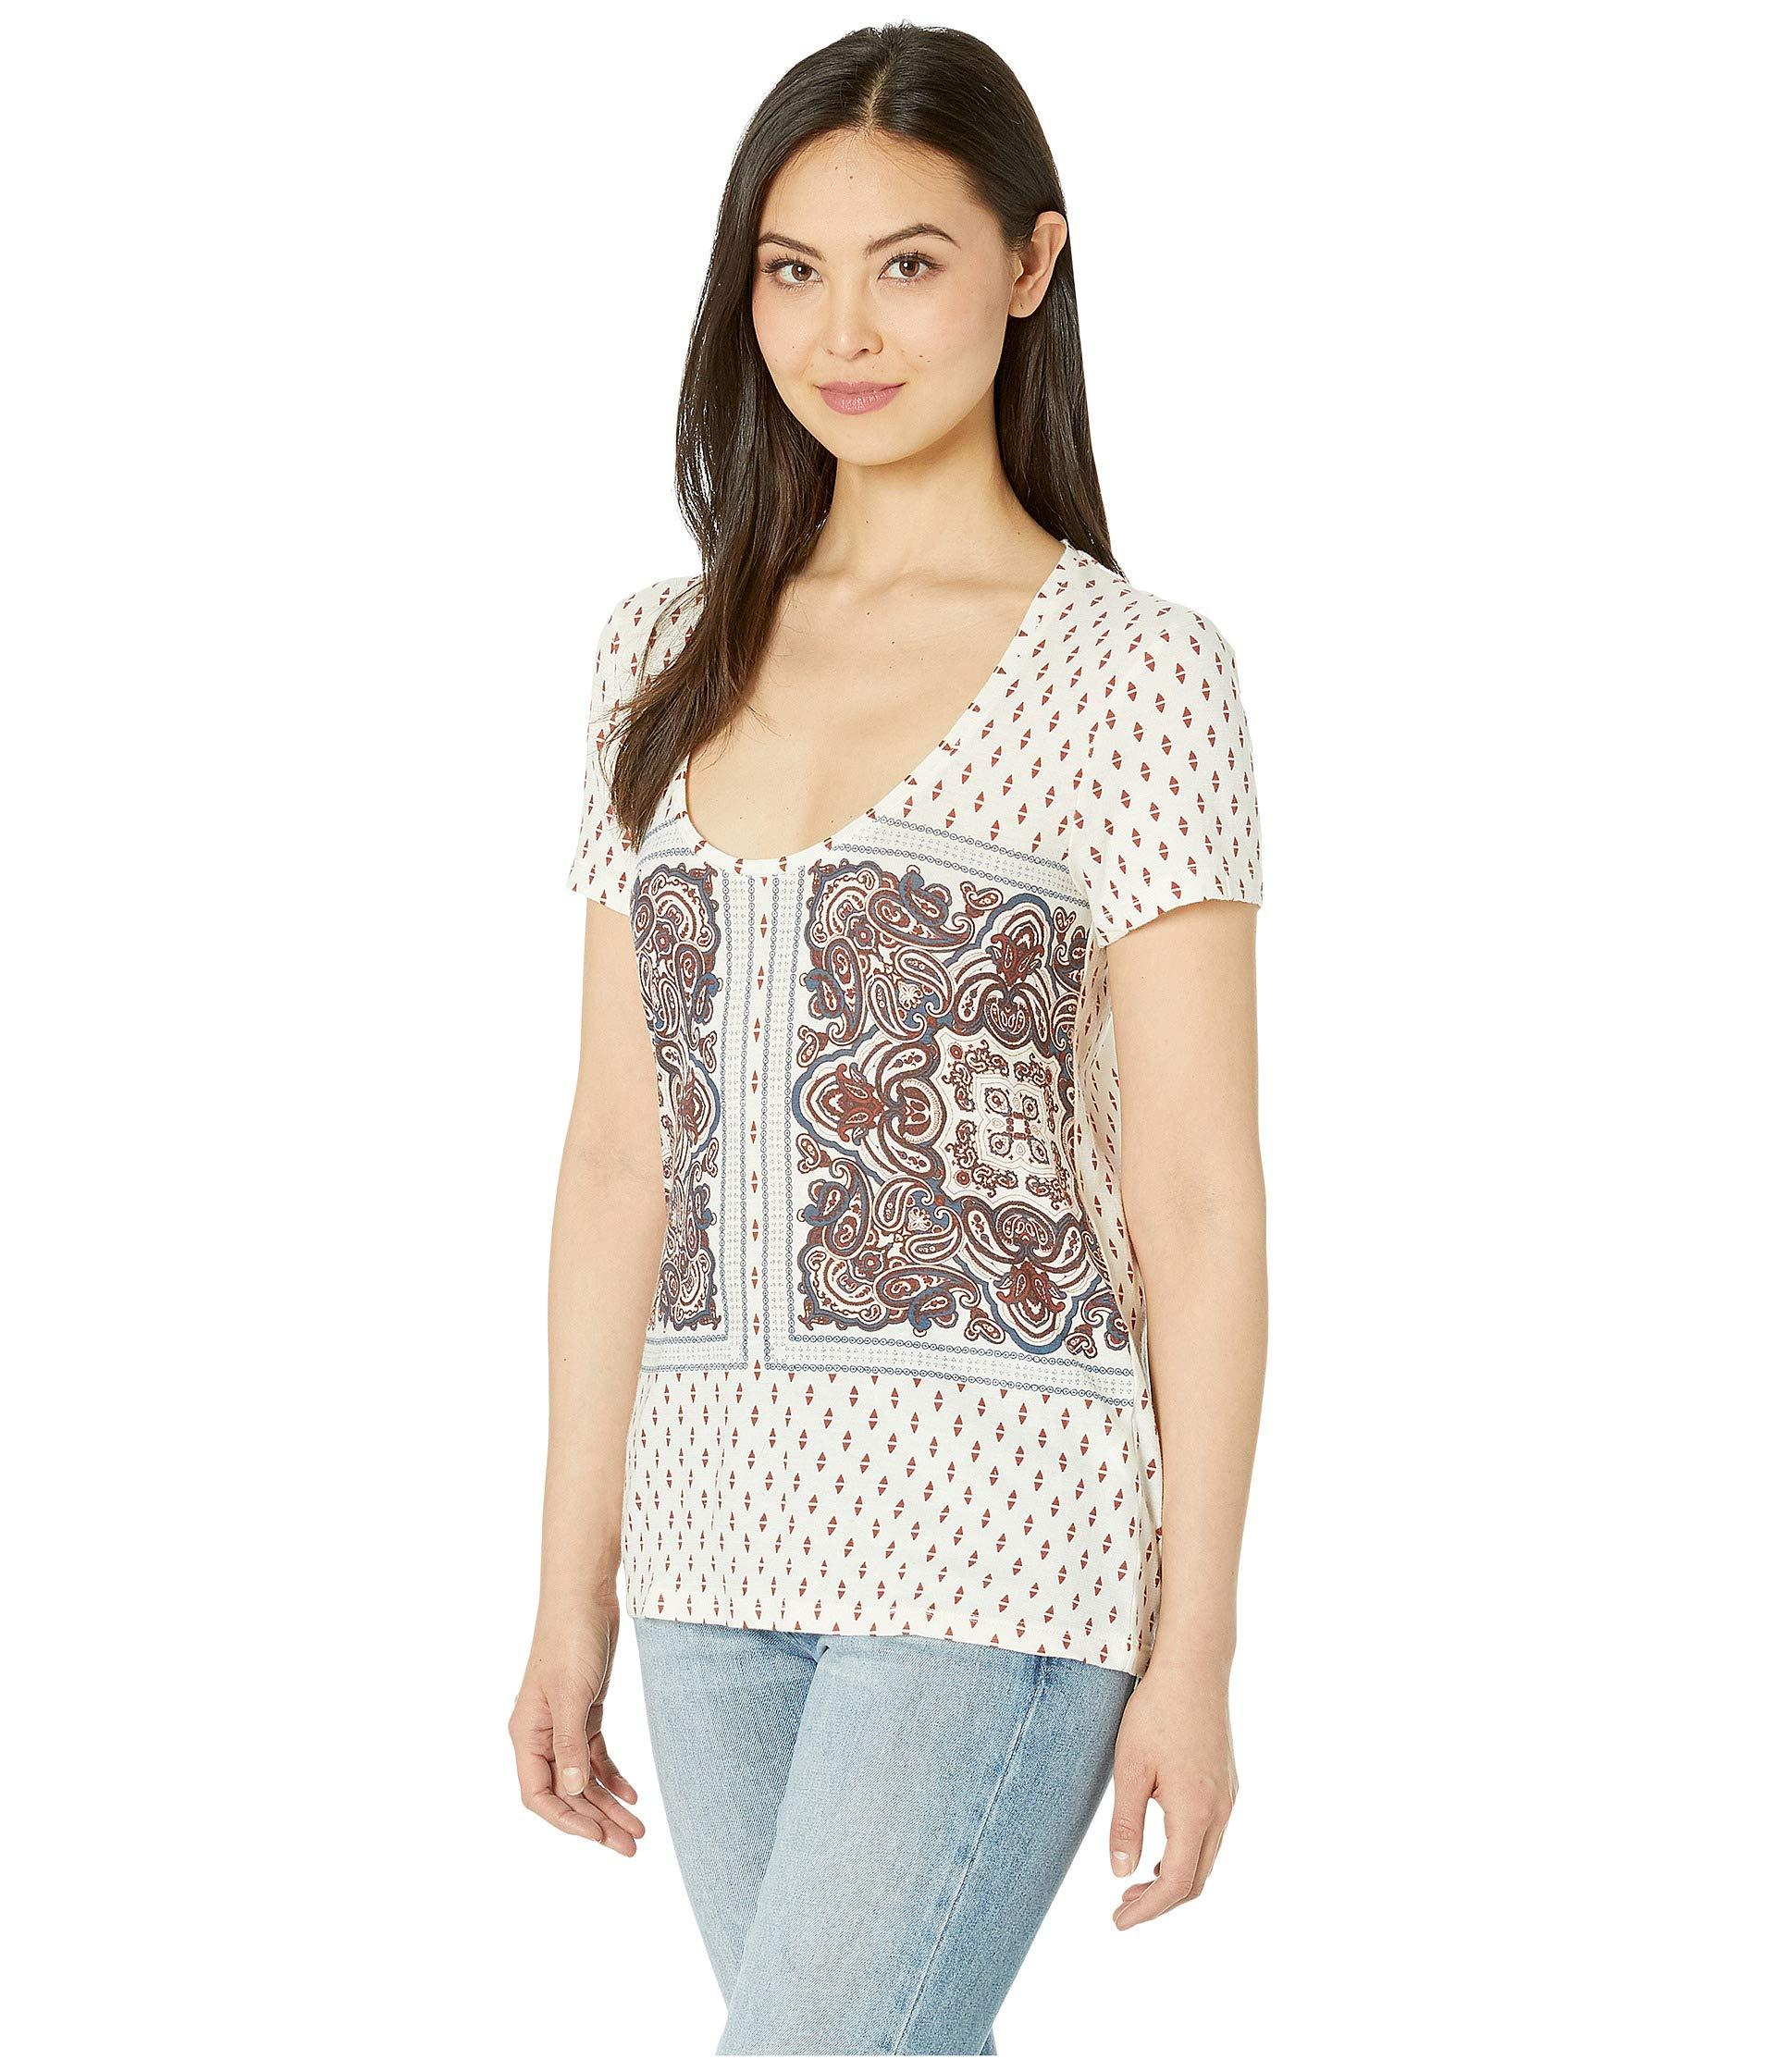 c2c2e8d8cb827 Lyst - Lucky Brand Paisley Border Print Tee (natural Multi) Women s  Clothing in Natural